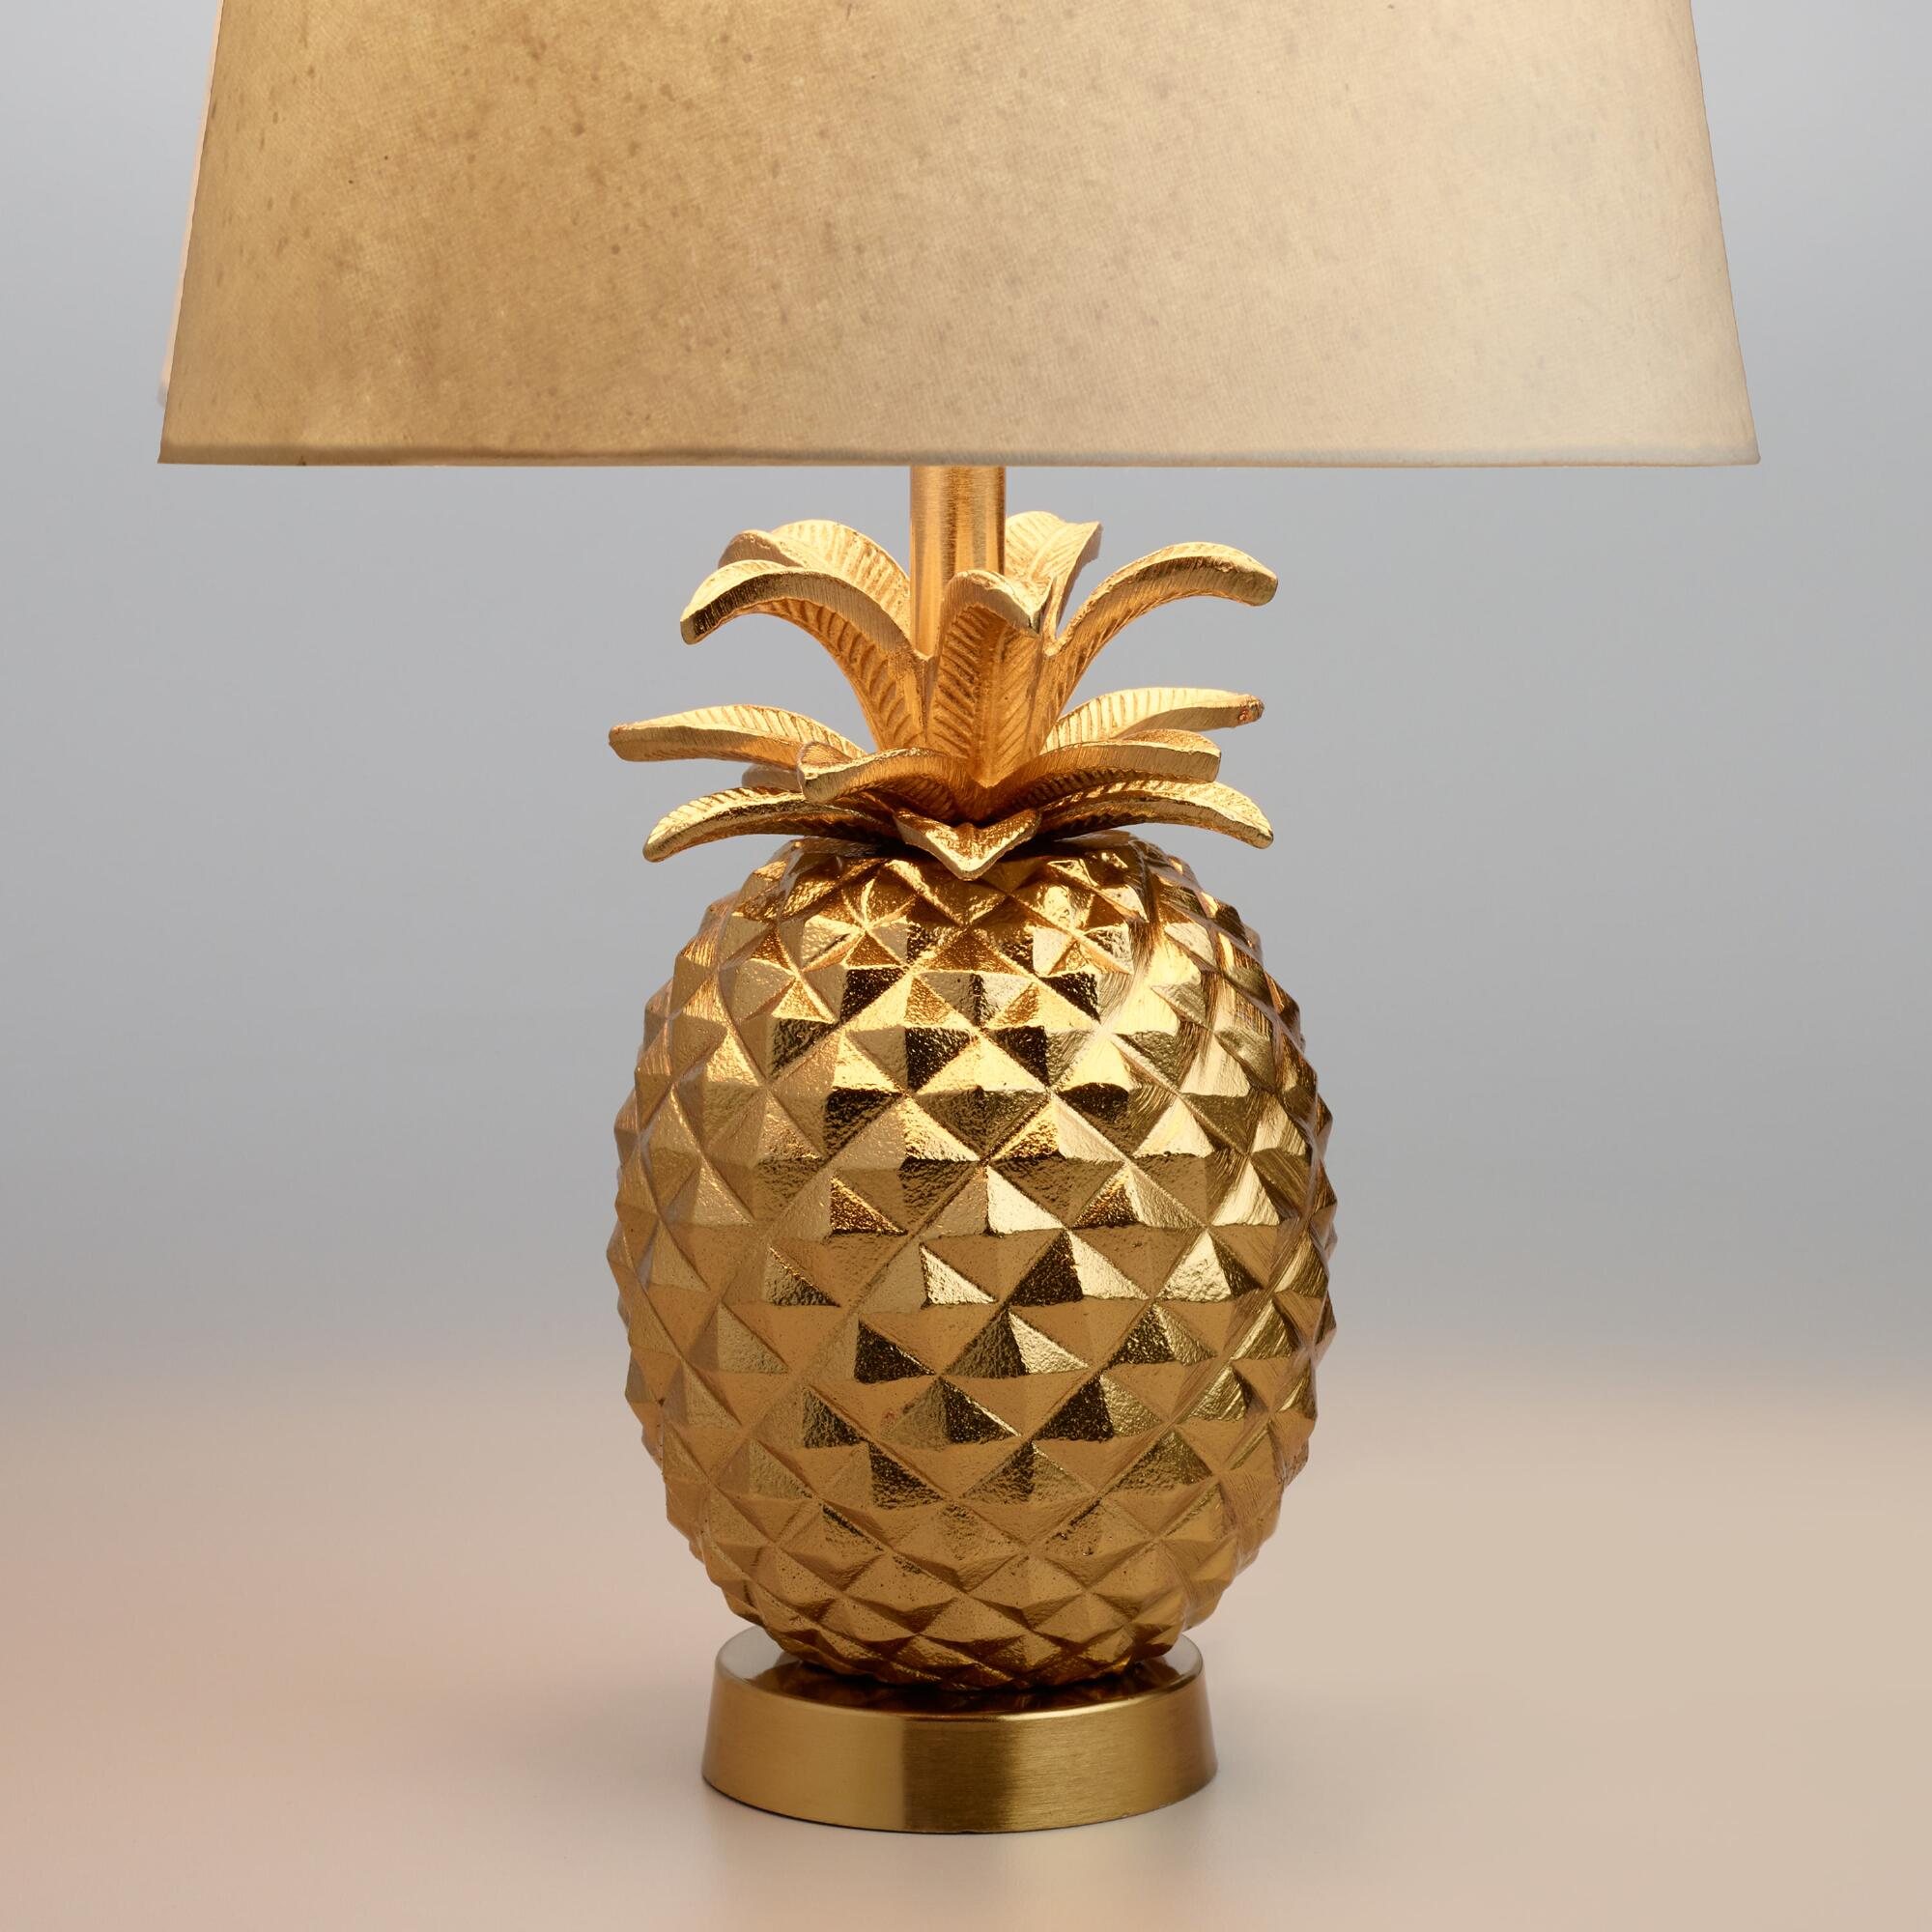 accent lighting unique table lamps world market iipsrv fcgi mini brass pineapple lamp base homesense tables dining and chair set oval plastic tablecloth valance curtains pottery